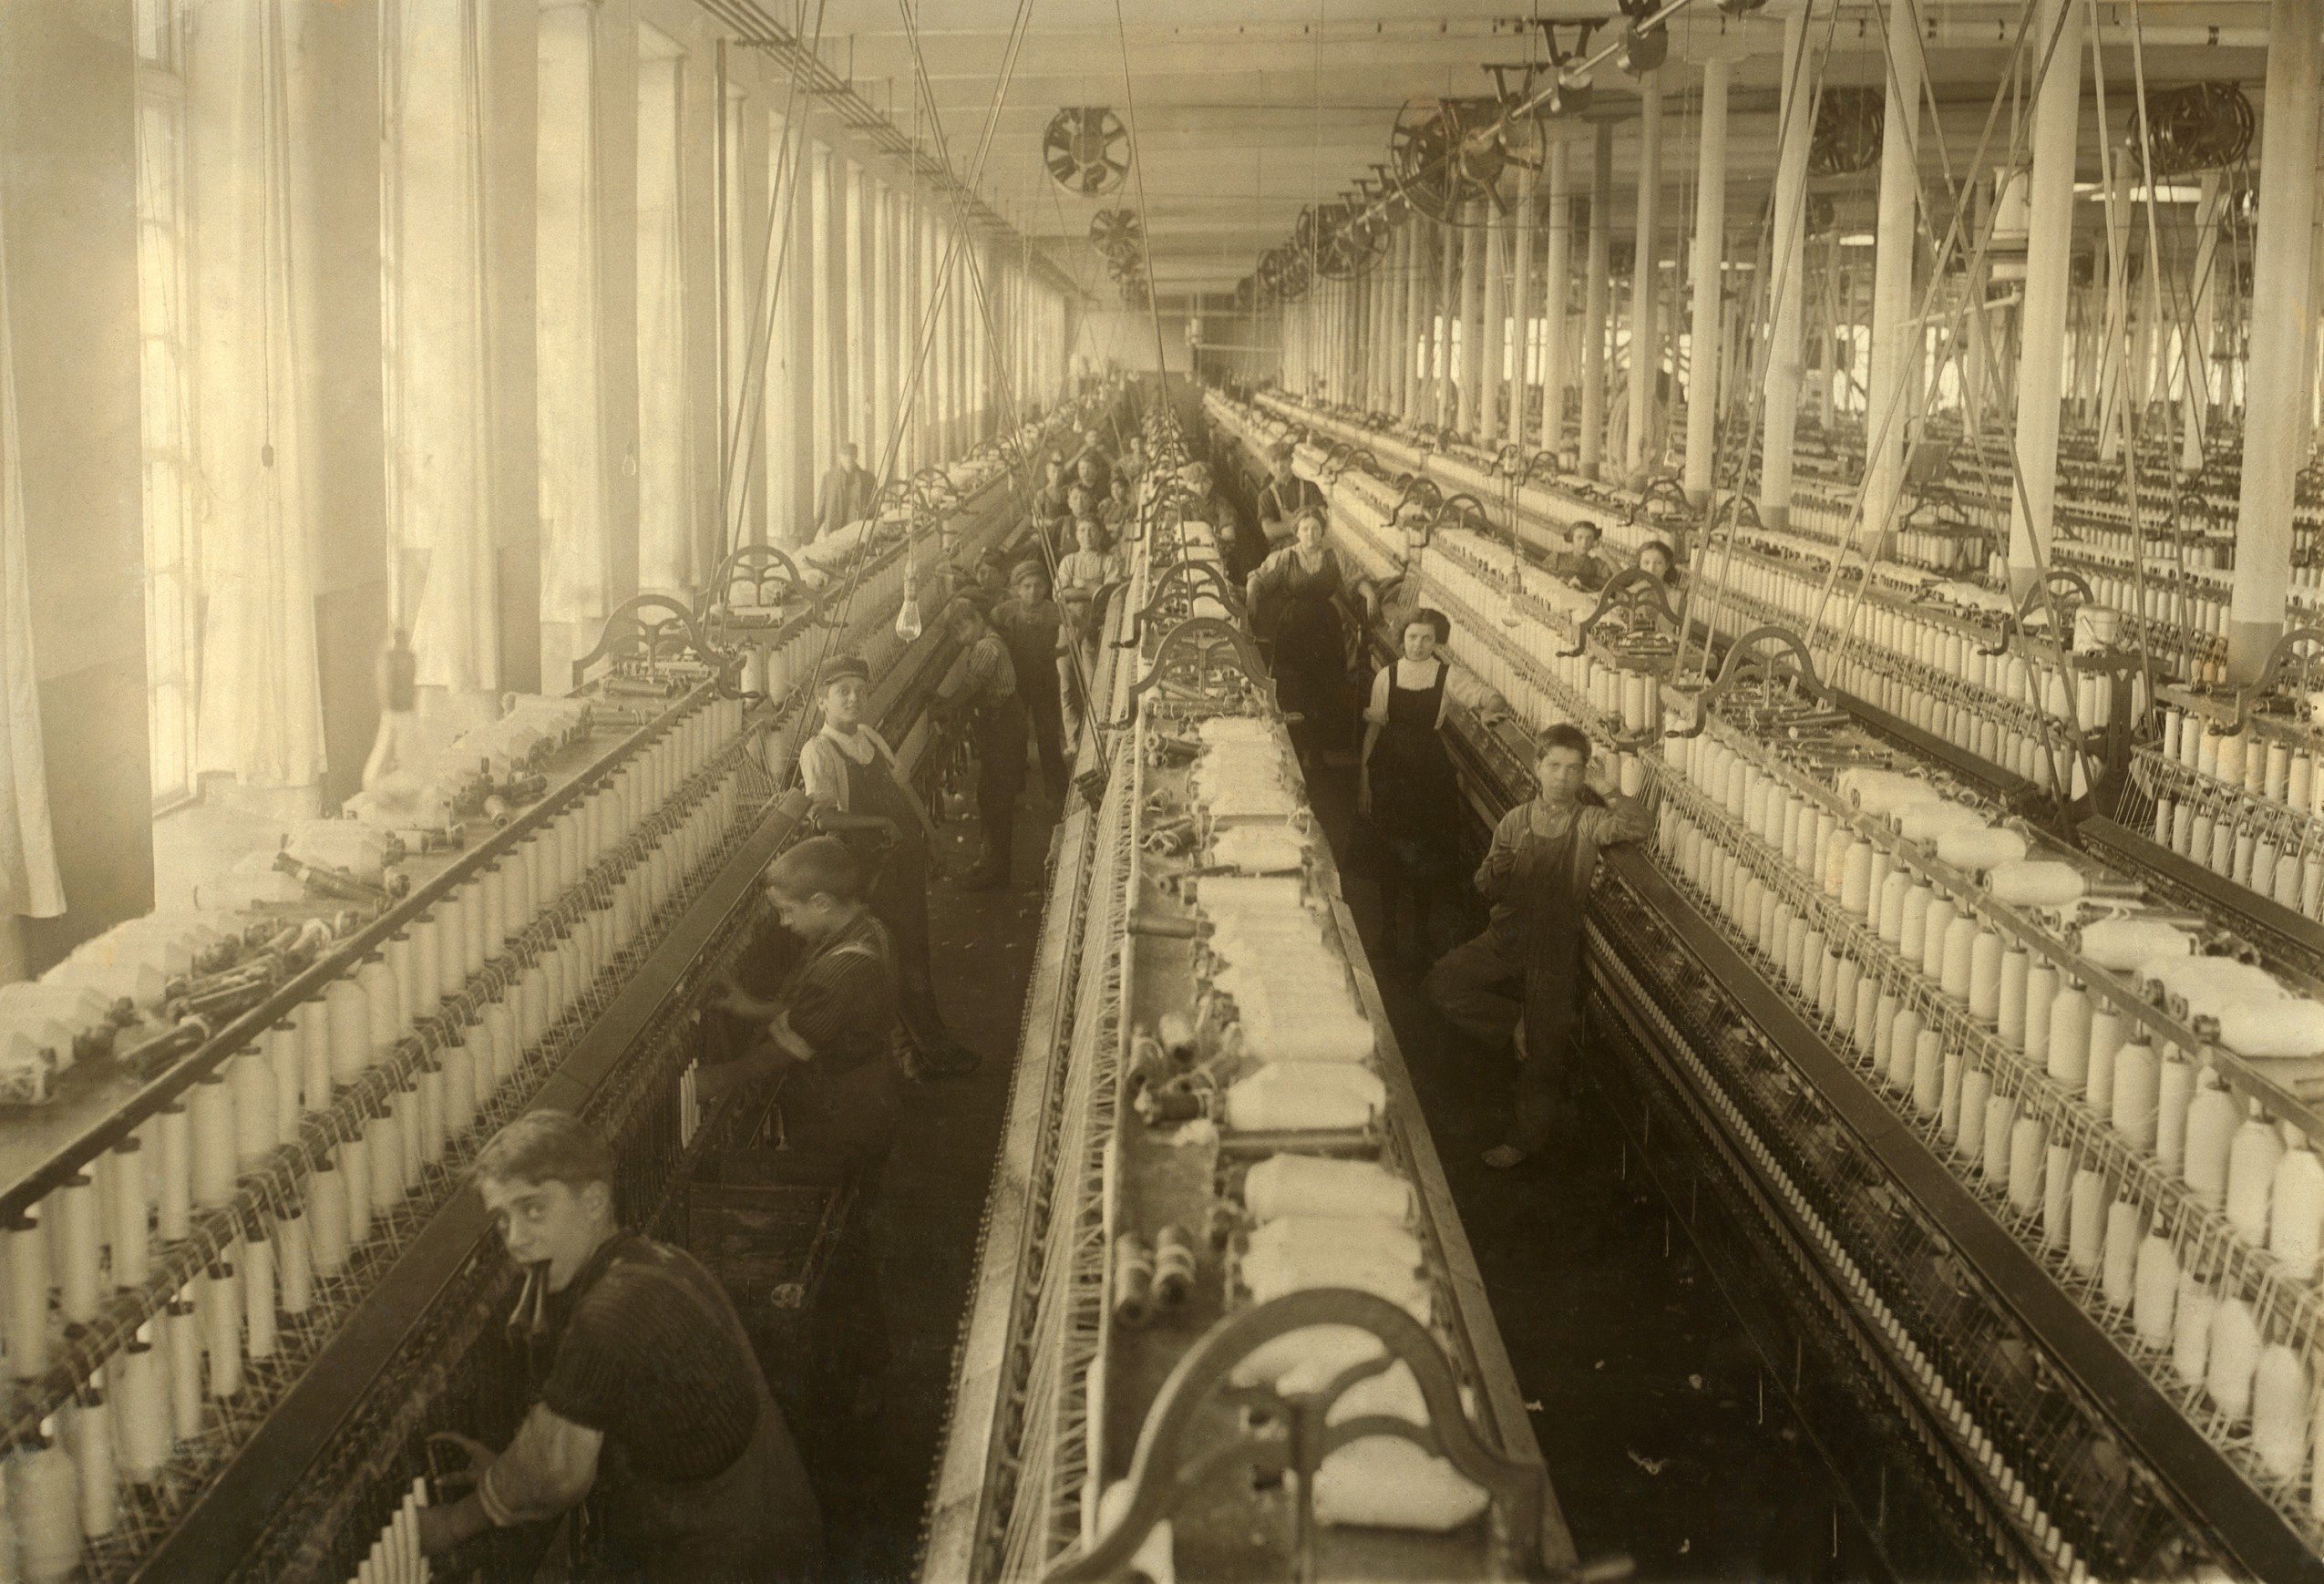 A new study has found that the psychological consequences of the Industrial Revolution are lingering in many communities today.